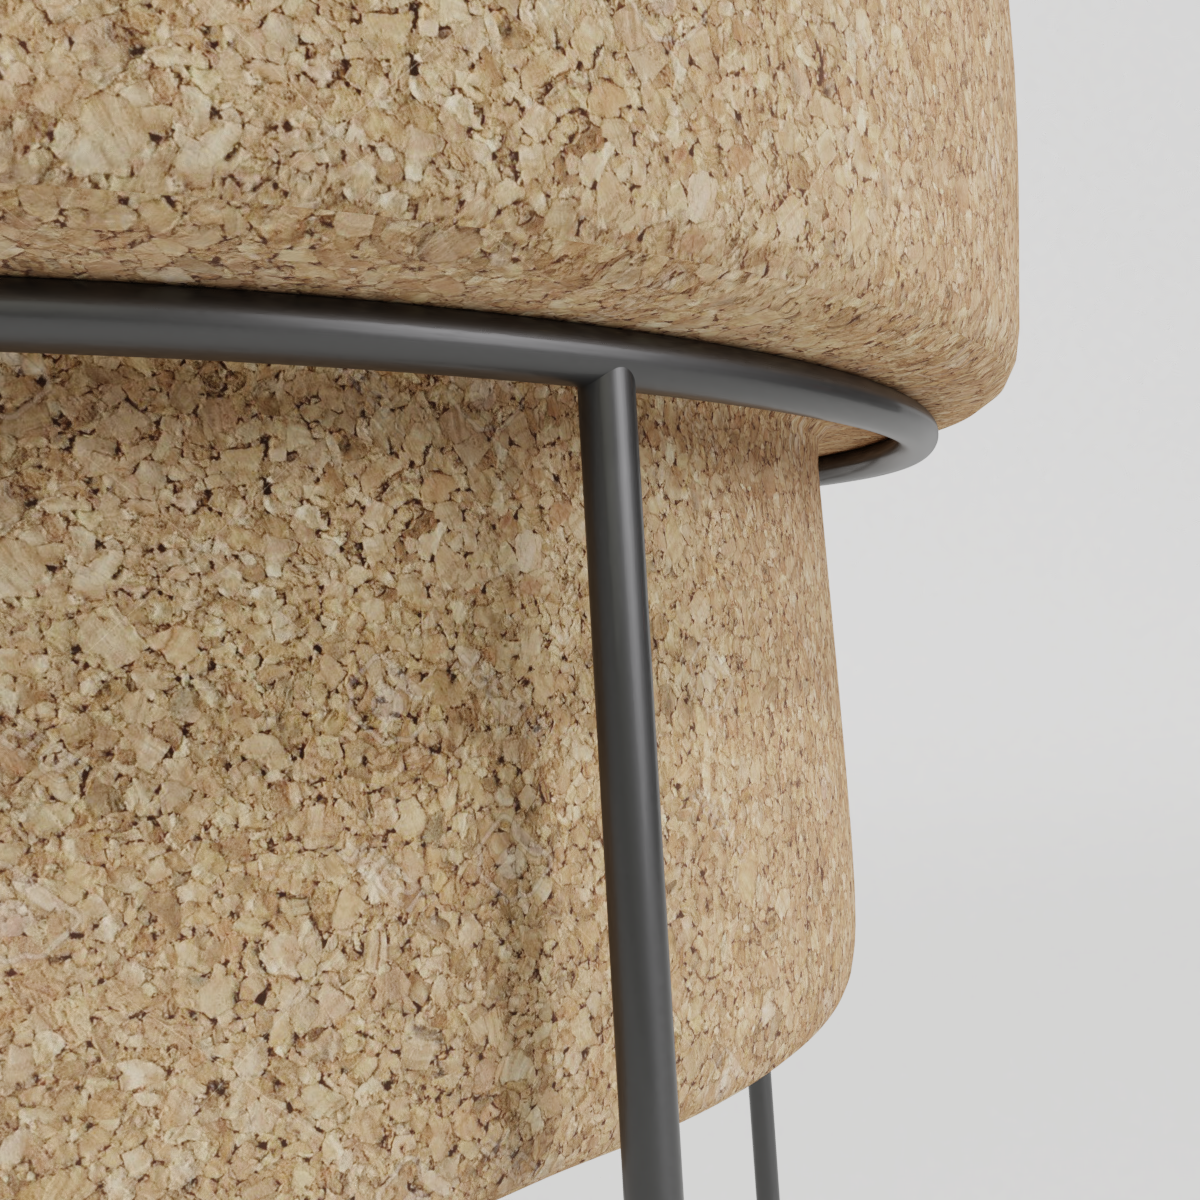 Cork stool preview image 3